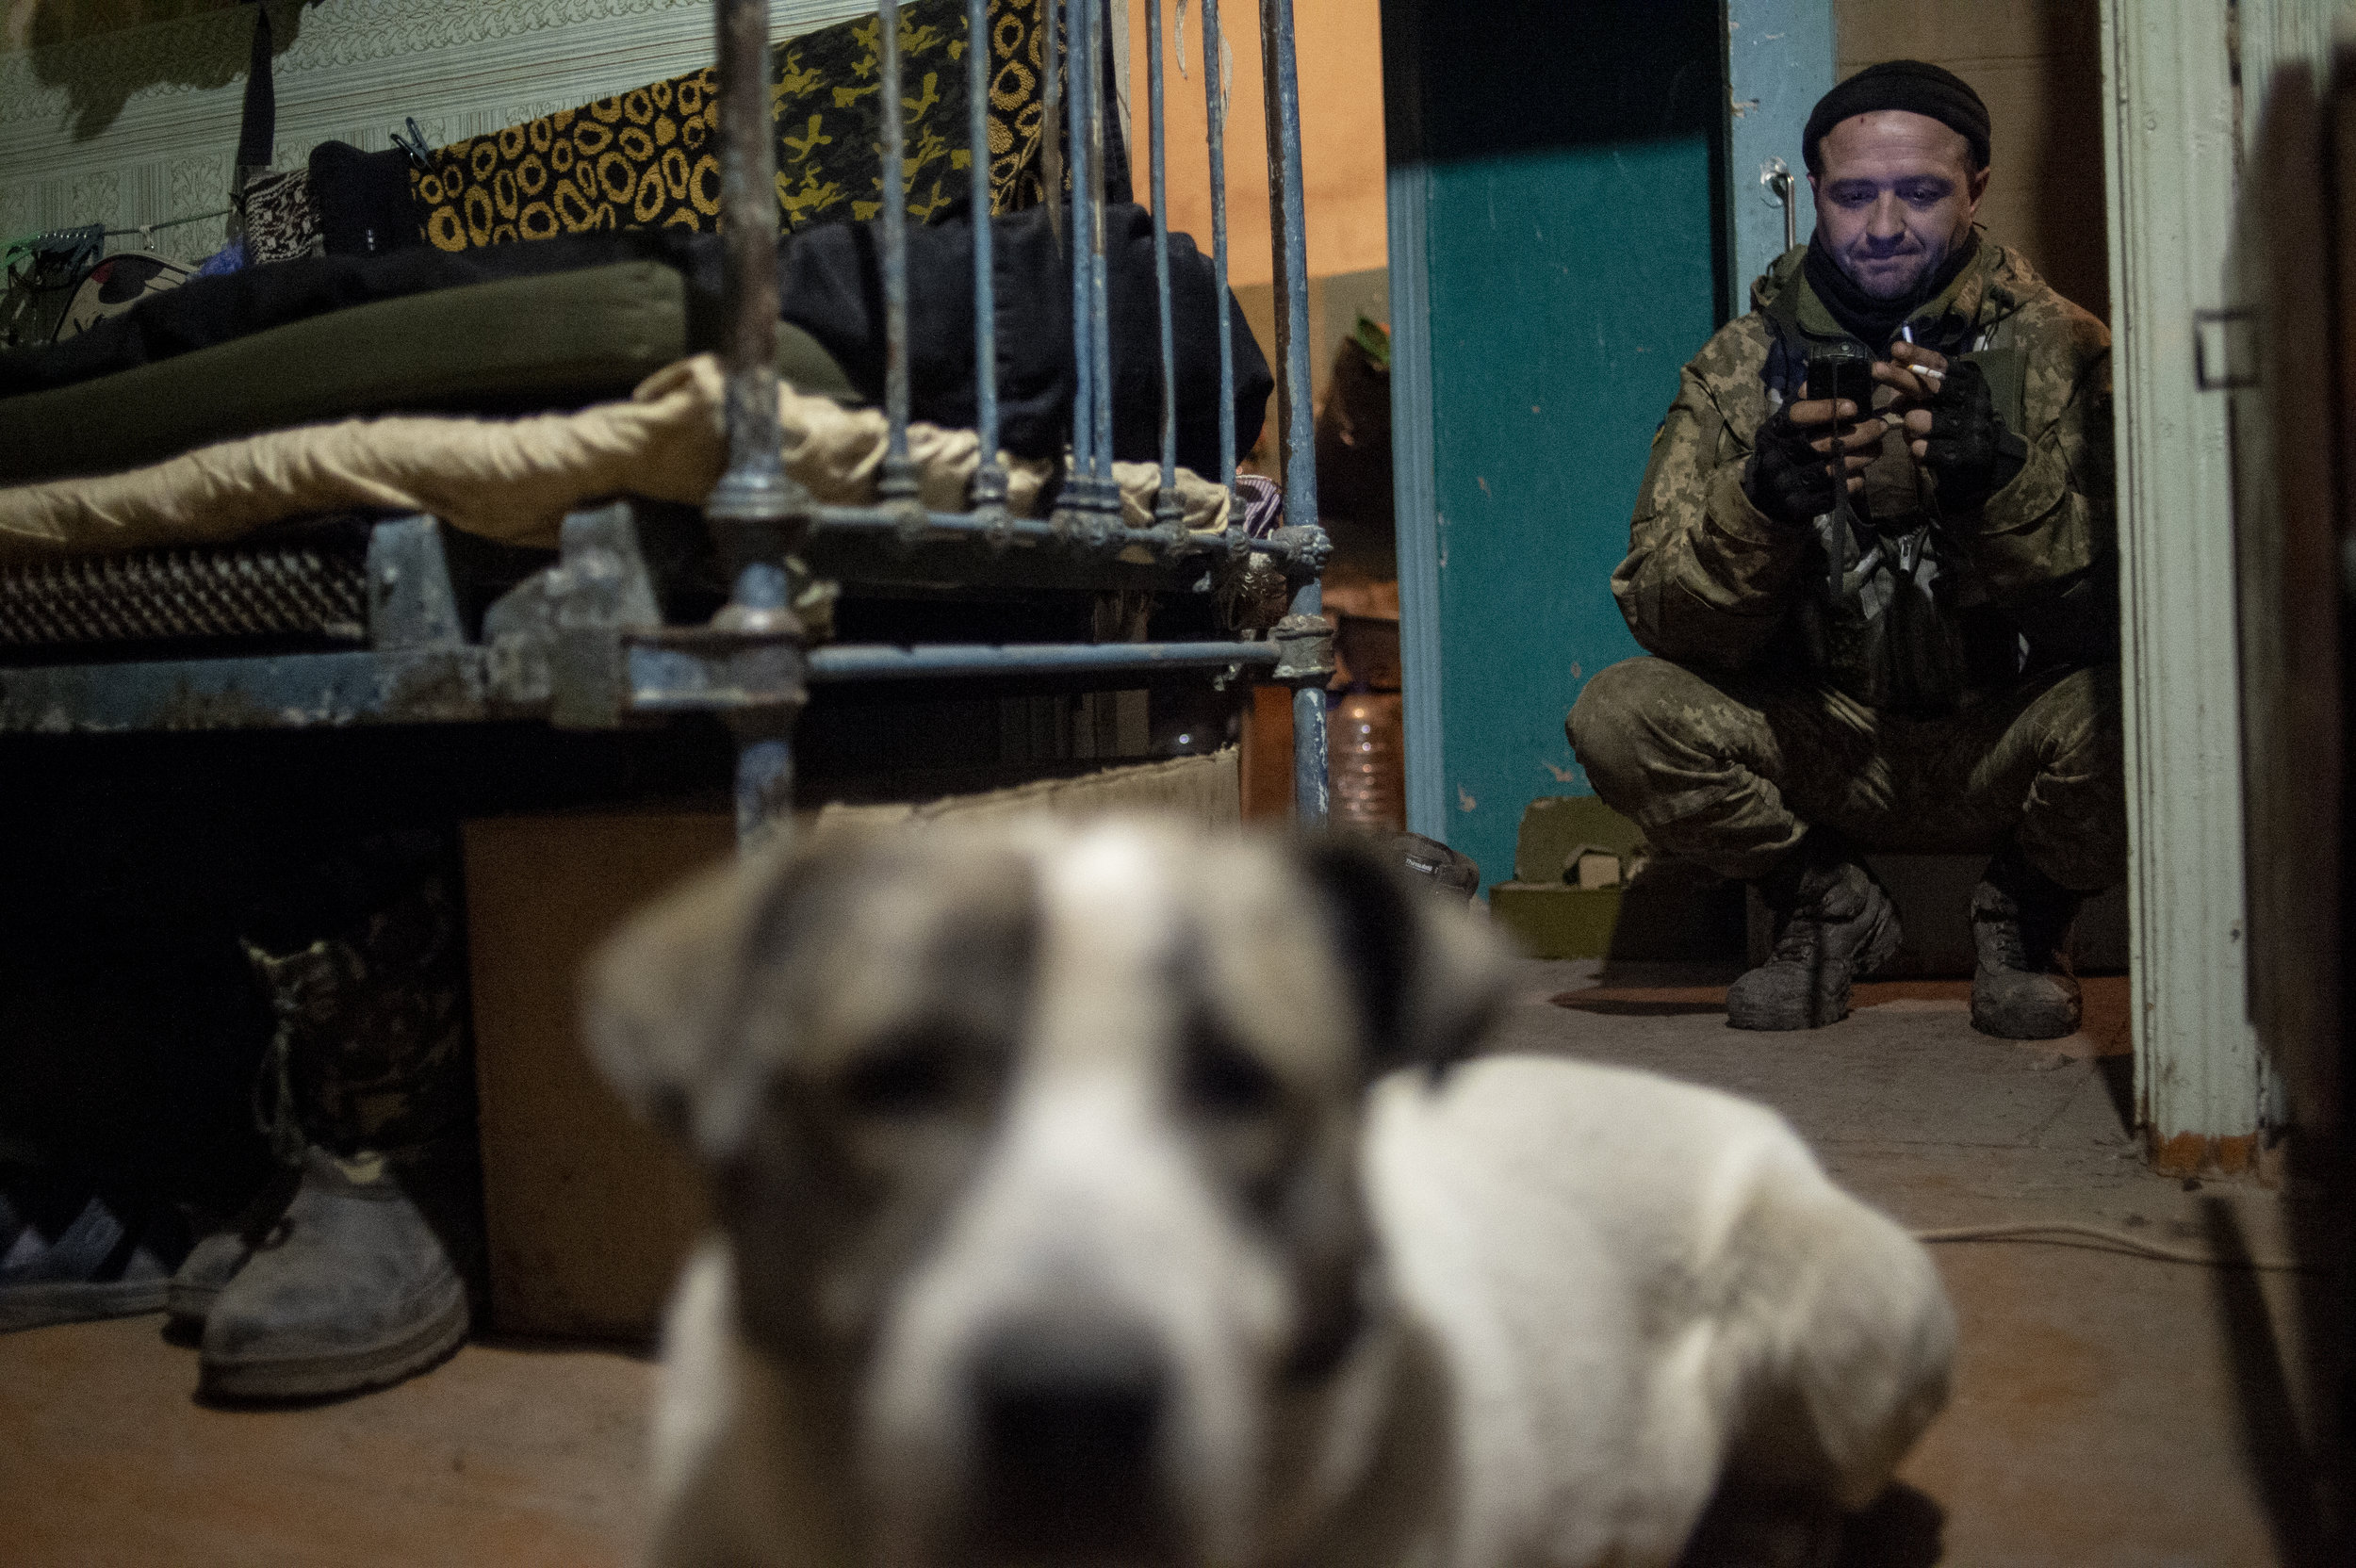 Demitry, a soldier in the 54th Mechanized Rifle Brigade, checks his phone in the makeshift barracks in Zolote shortly before taking his shift for guard duty at point zero.